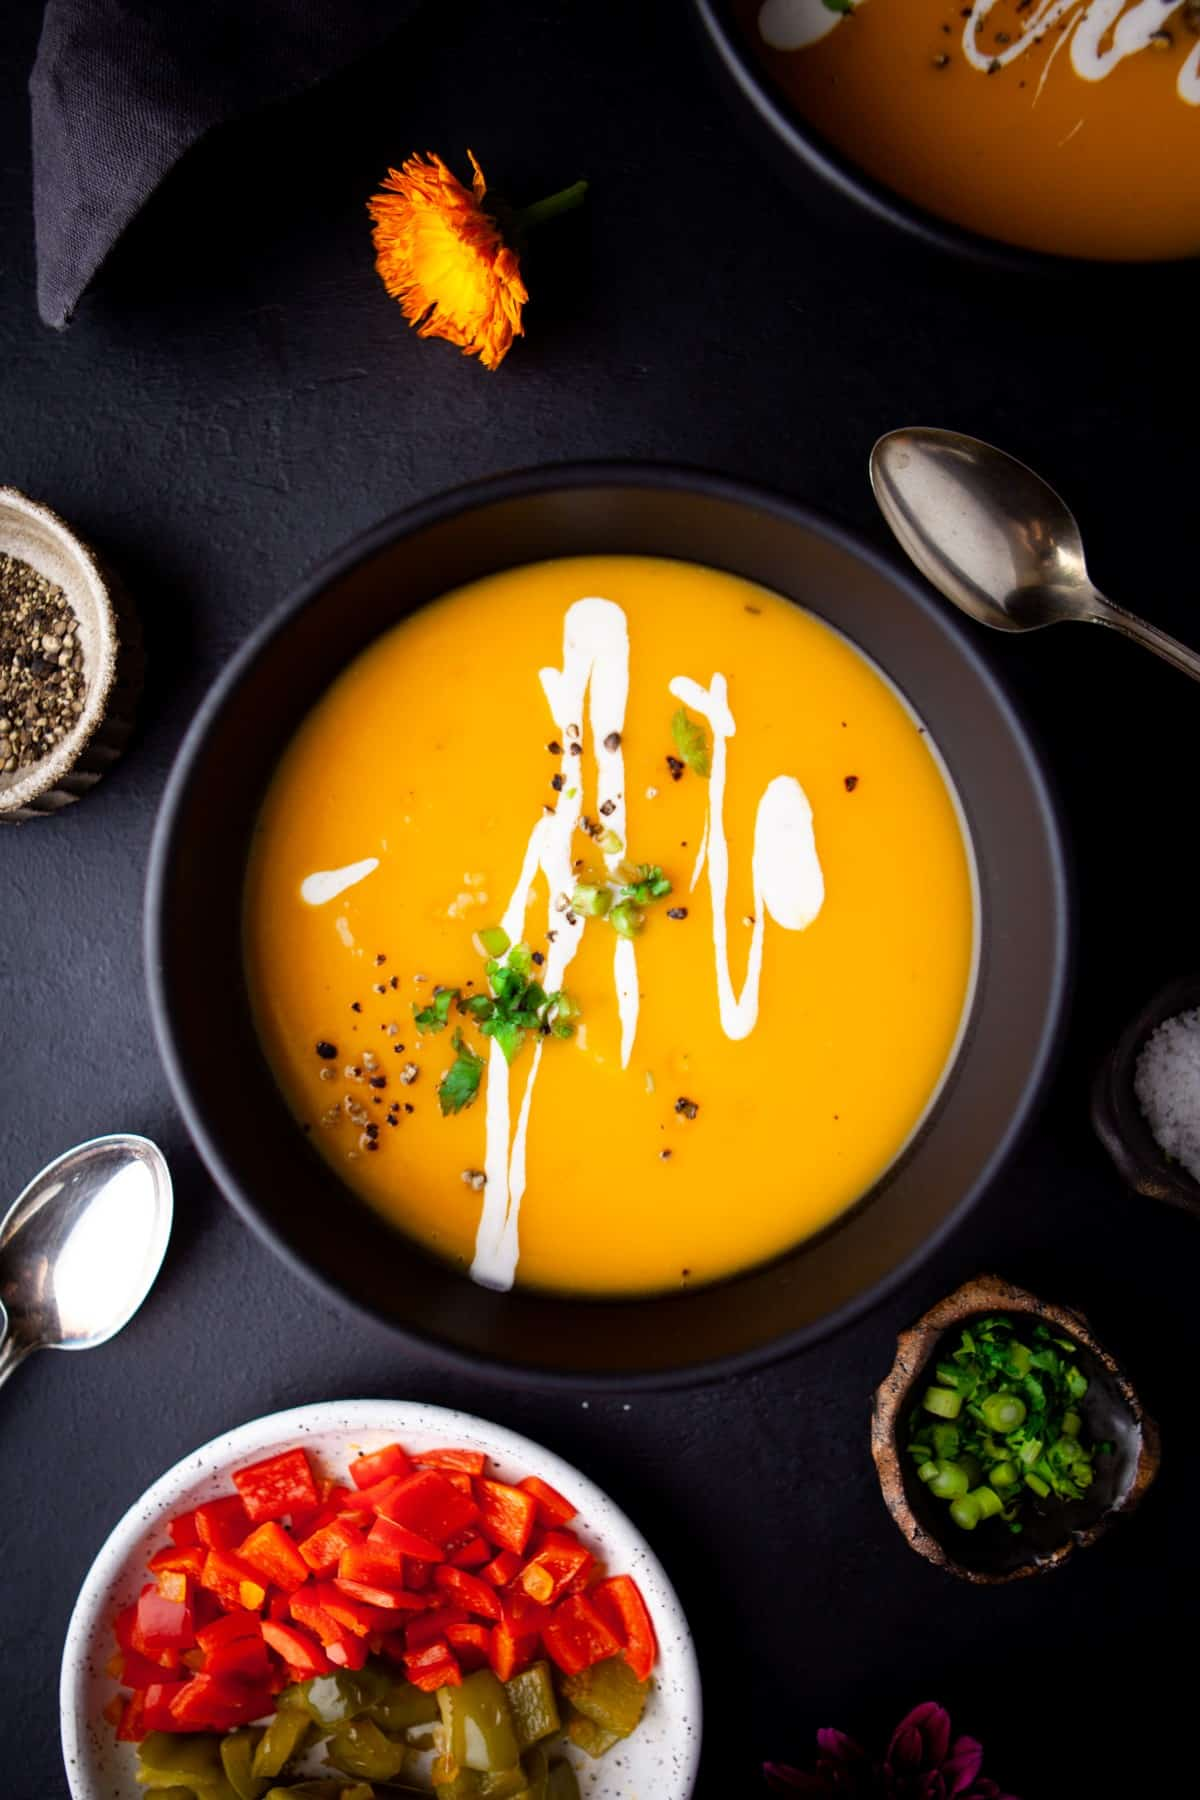 Overhead of Butternut Squash Soup in a black bowl with sour cream drizzle and cilantro